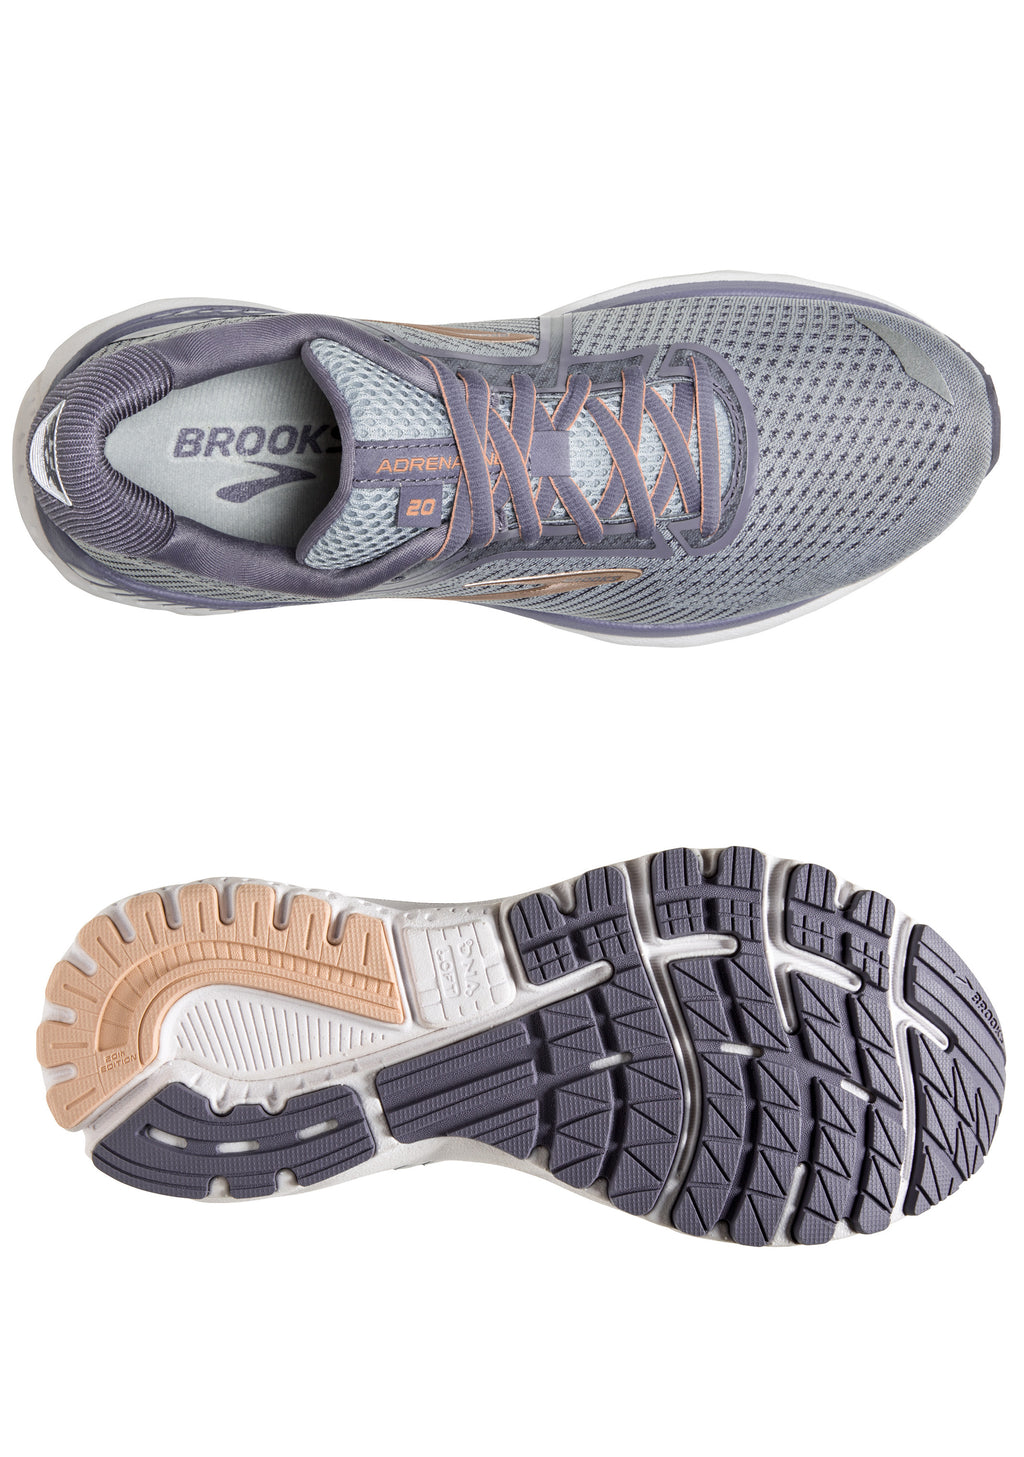 SALE SALE SALEBrooks Maximus XT 10 Mens Cross Training Shoes 172 D Mesh